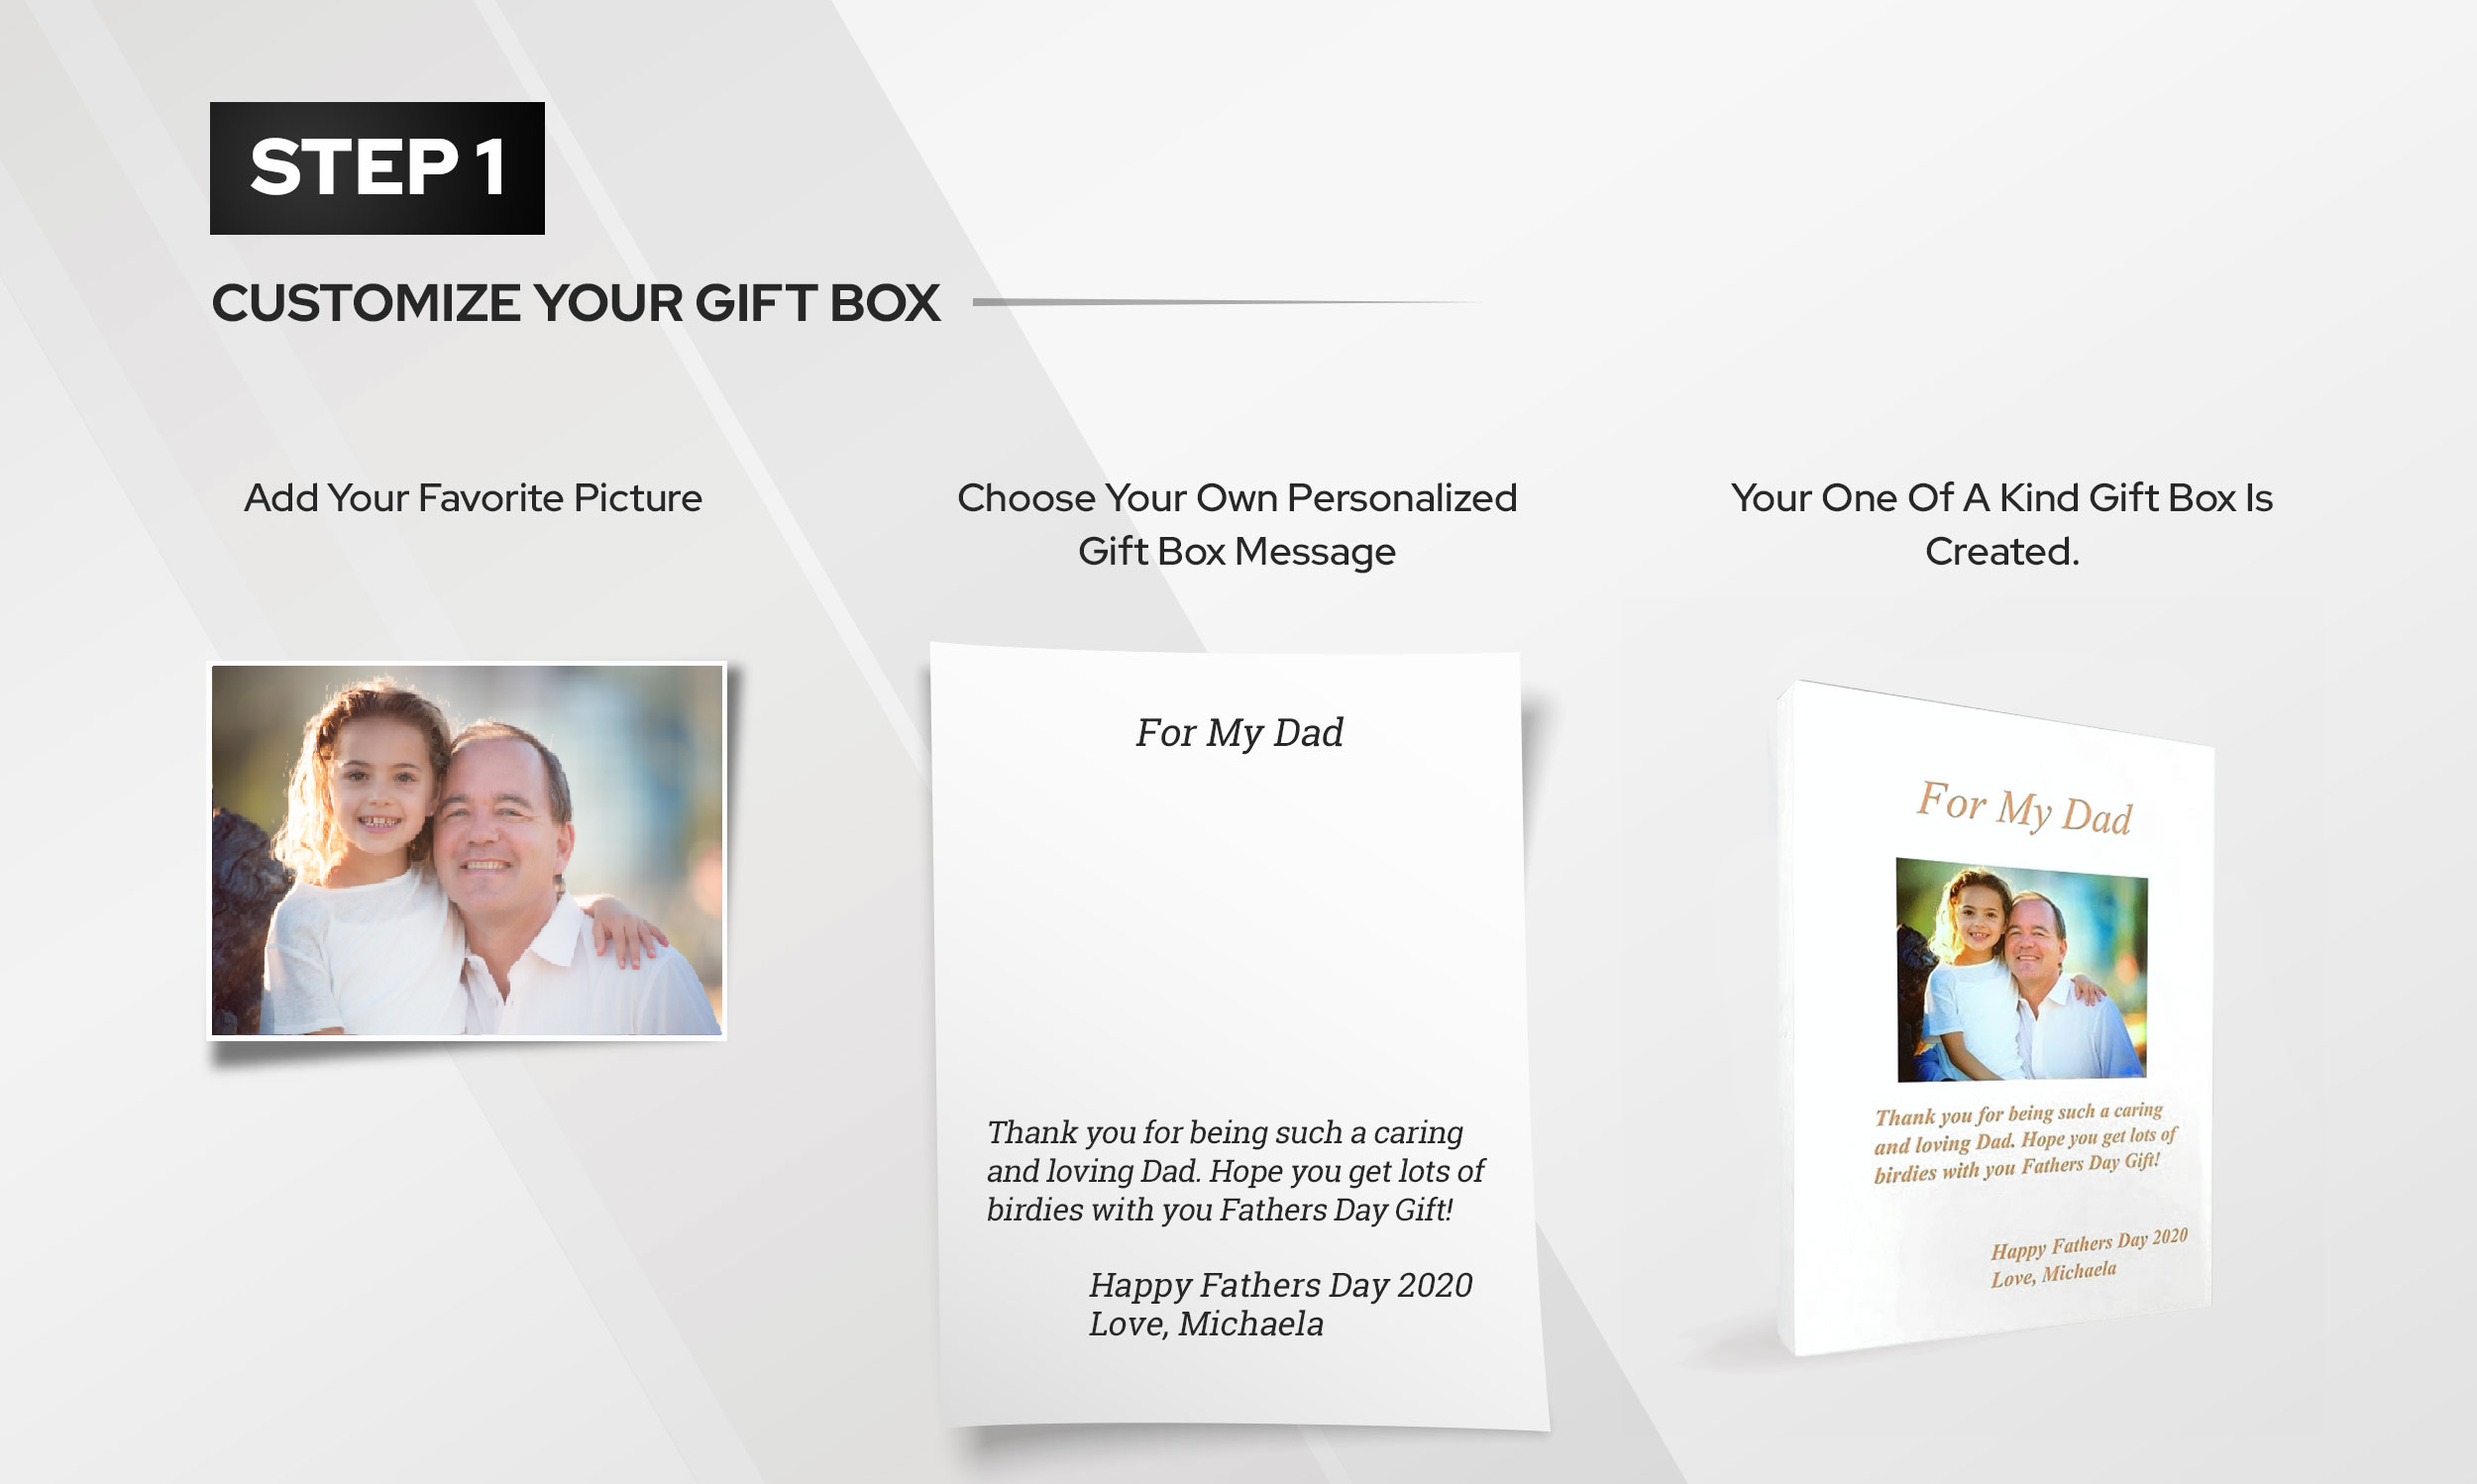 Step 1 - Customize Your Gift Box